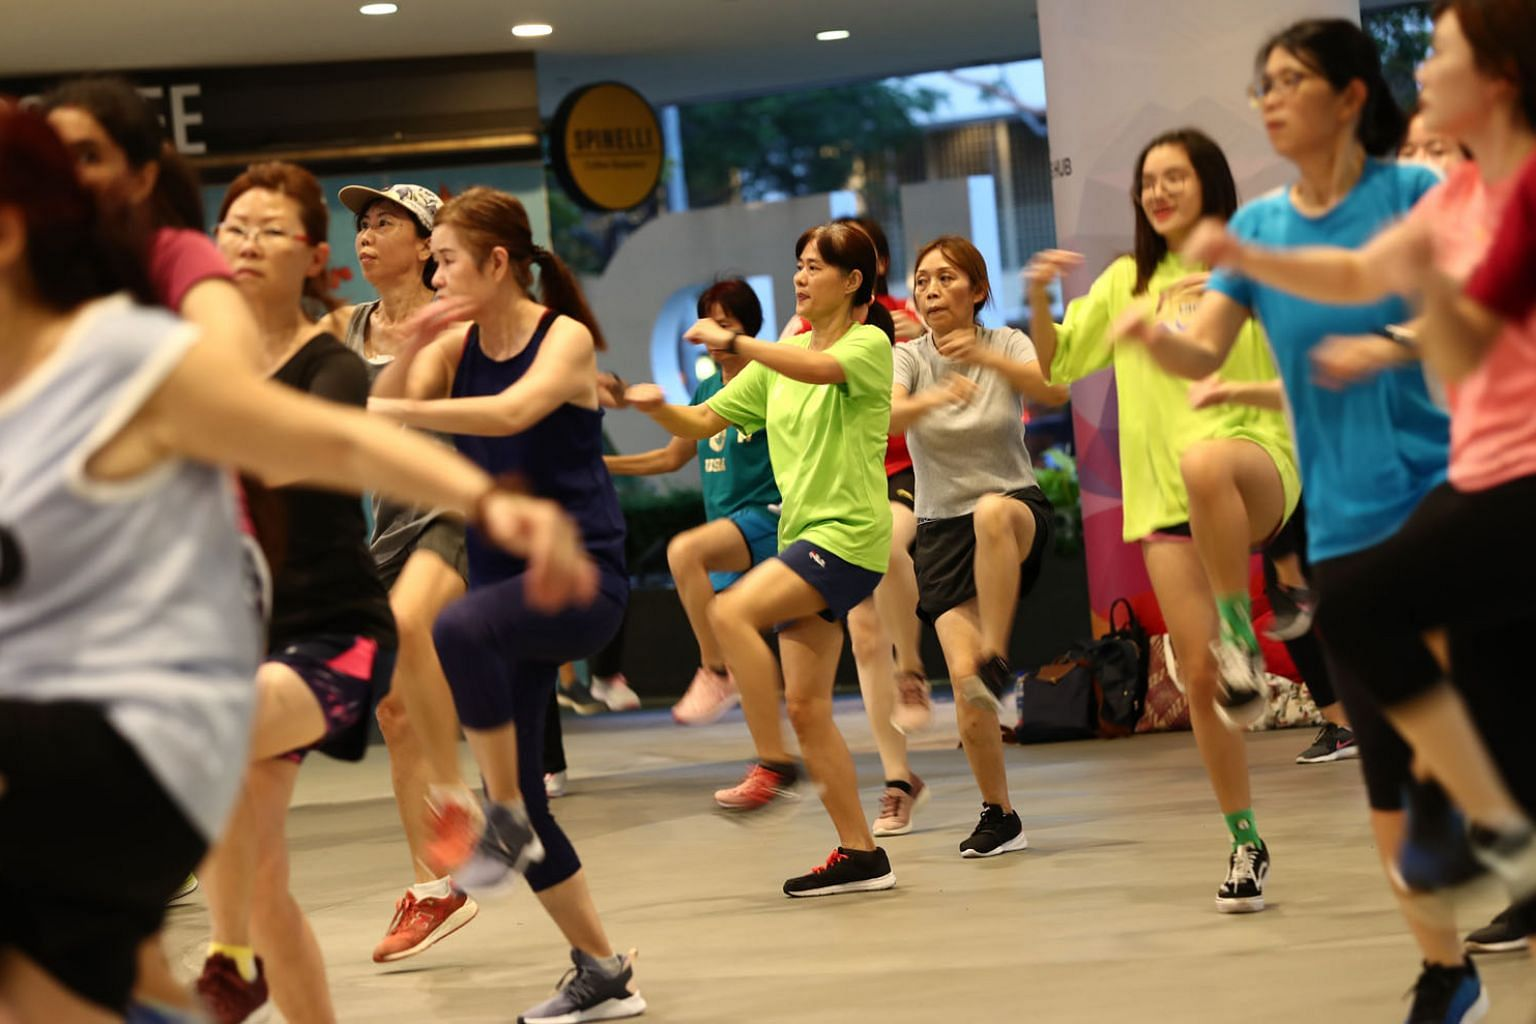 """Infectious diseases expert Leong Hoe Nam says: """"Sweat alone won't spread the disease, but it could if it mixes with gunk on a person's nose or if the person coughs and contaminates the sweat."""""""